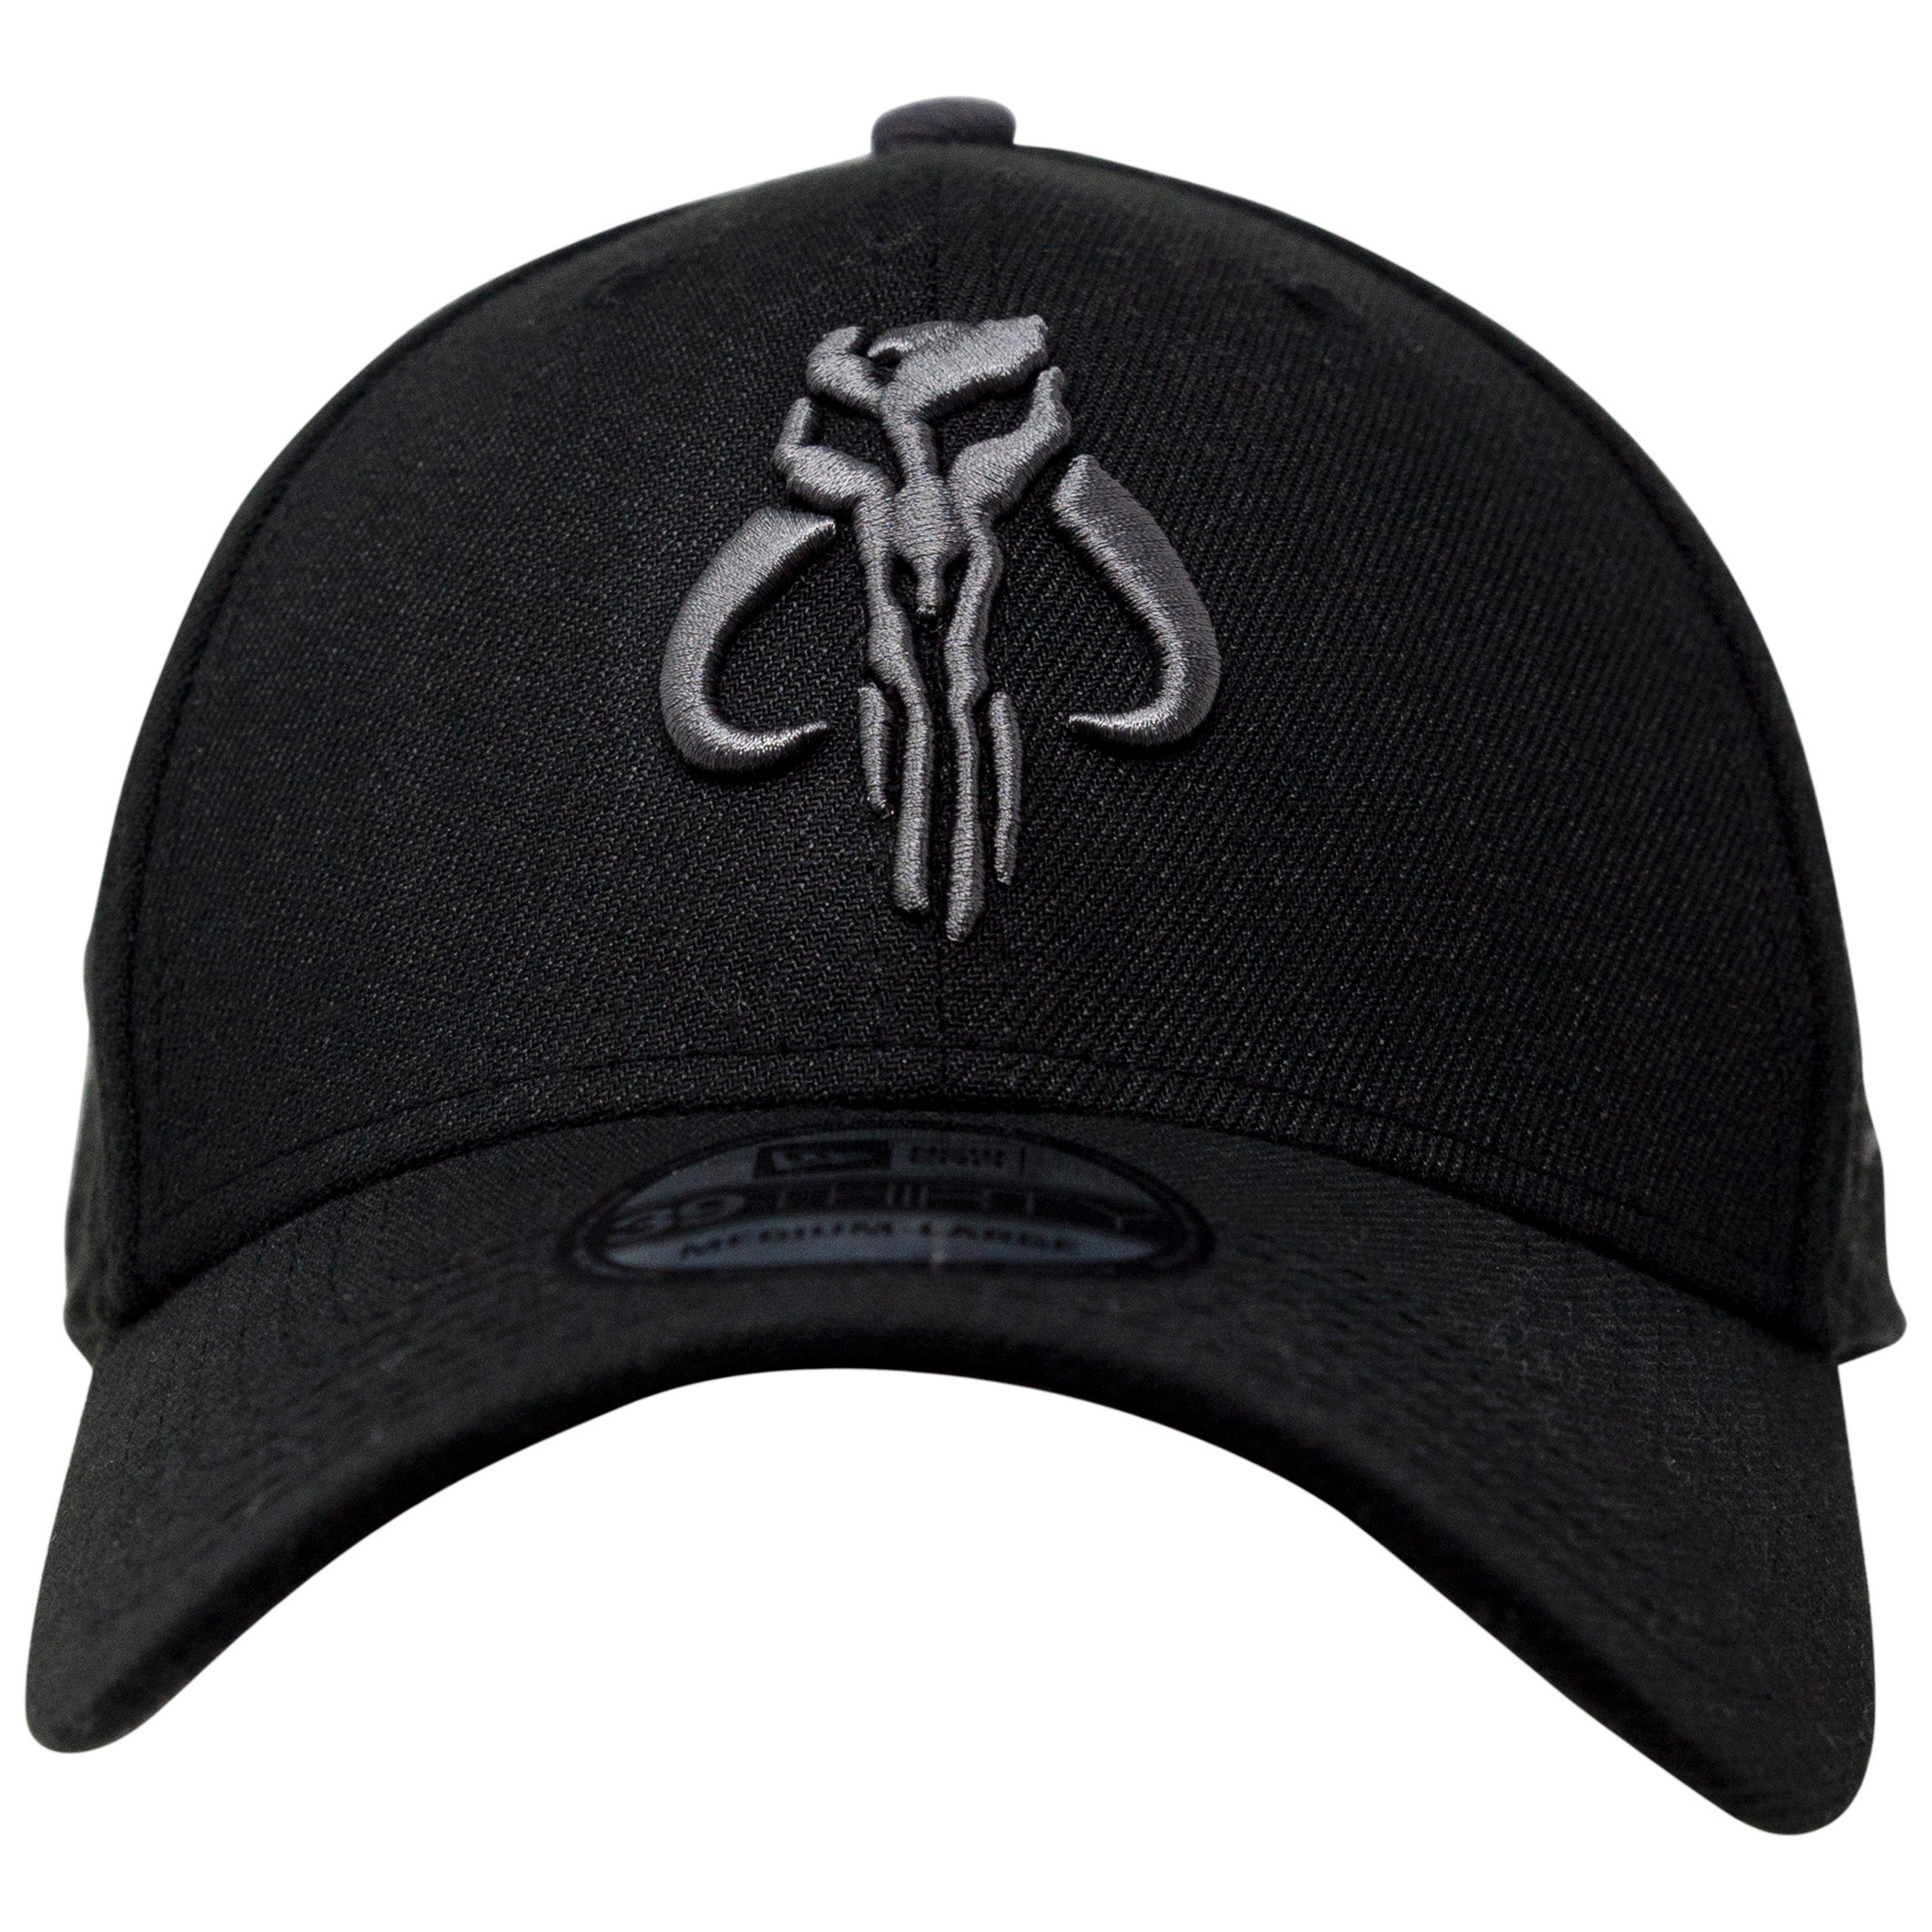 Star Wars The Mandalorian New Era 39Thirty Fitted Hat